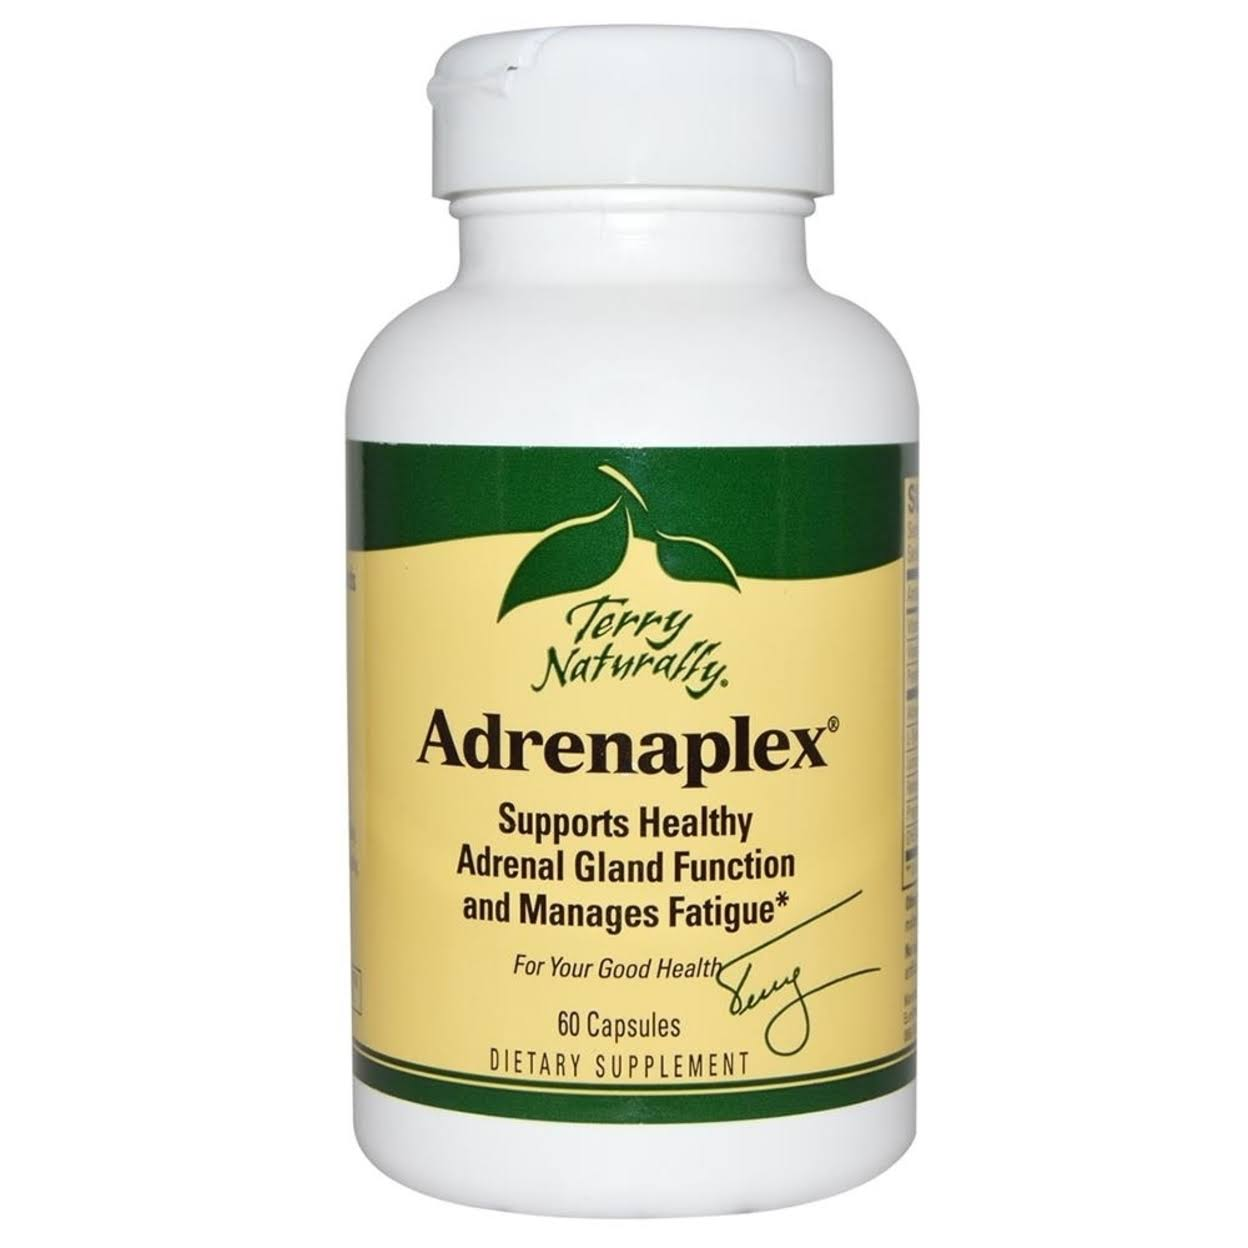 Terry Naturally Adrenaplex - 60 Capsules